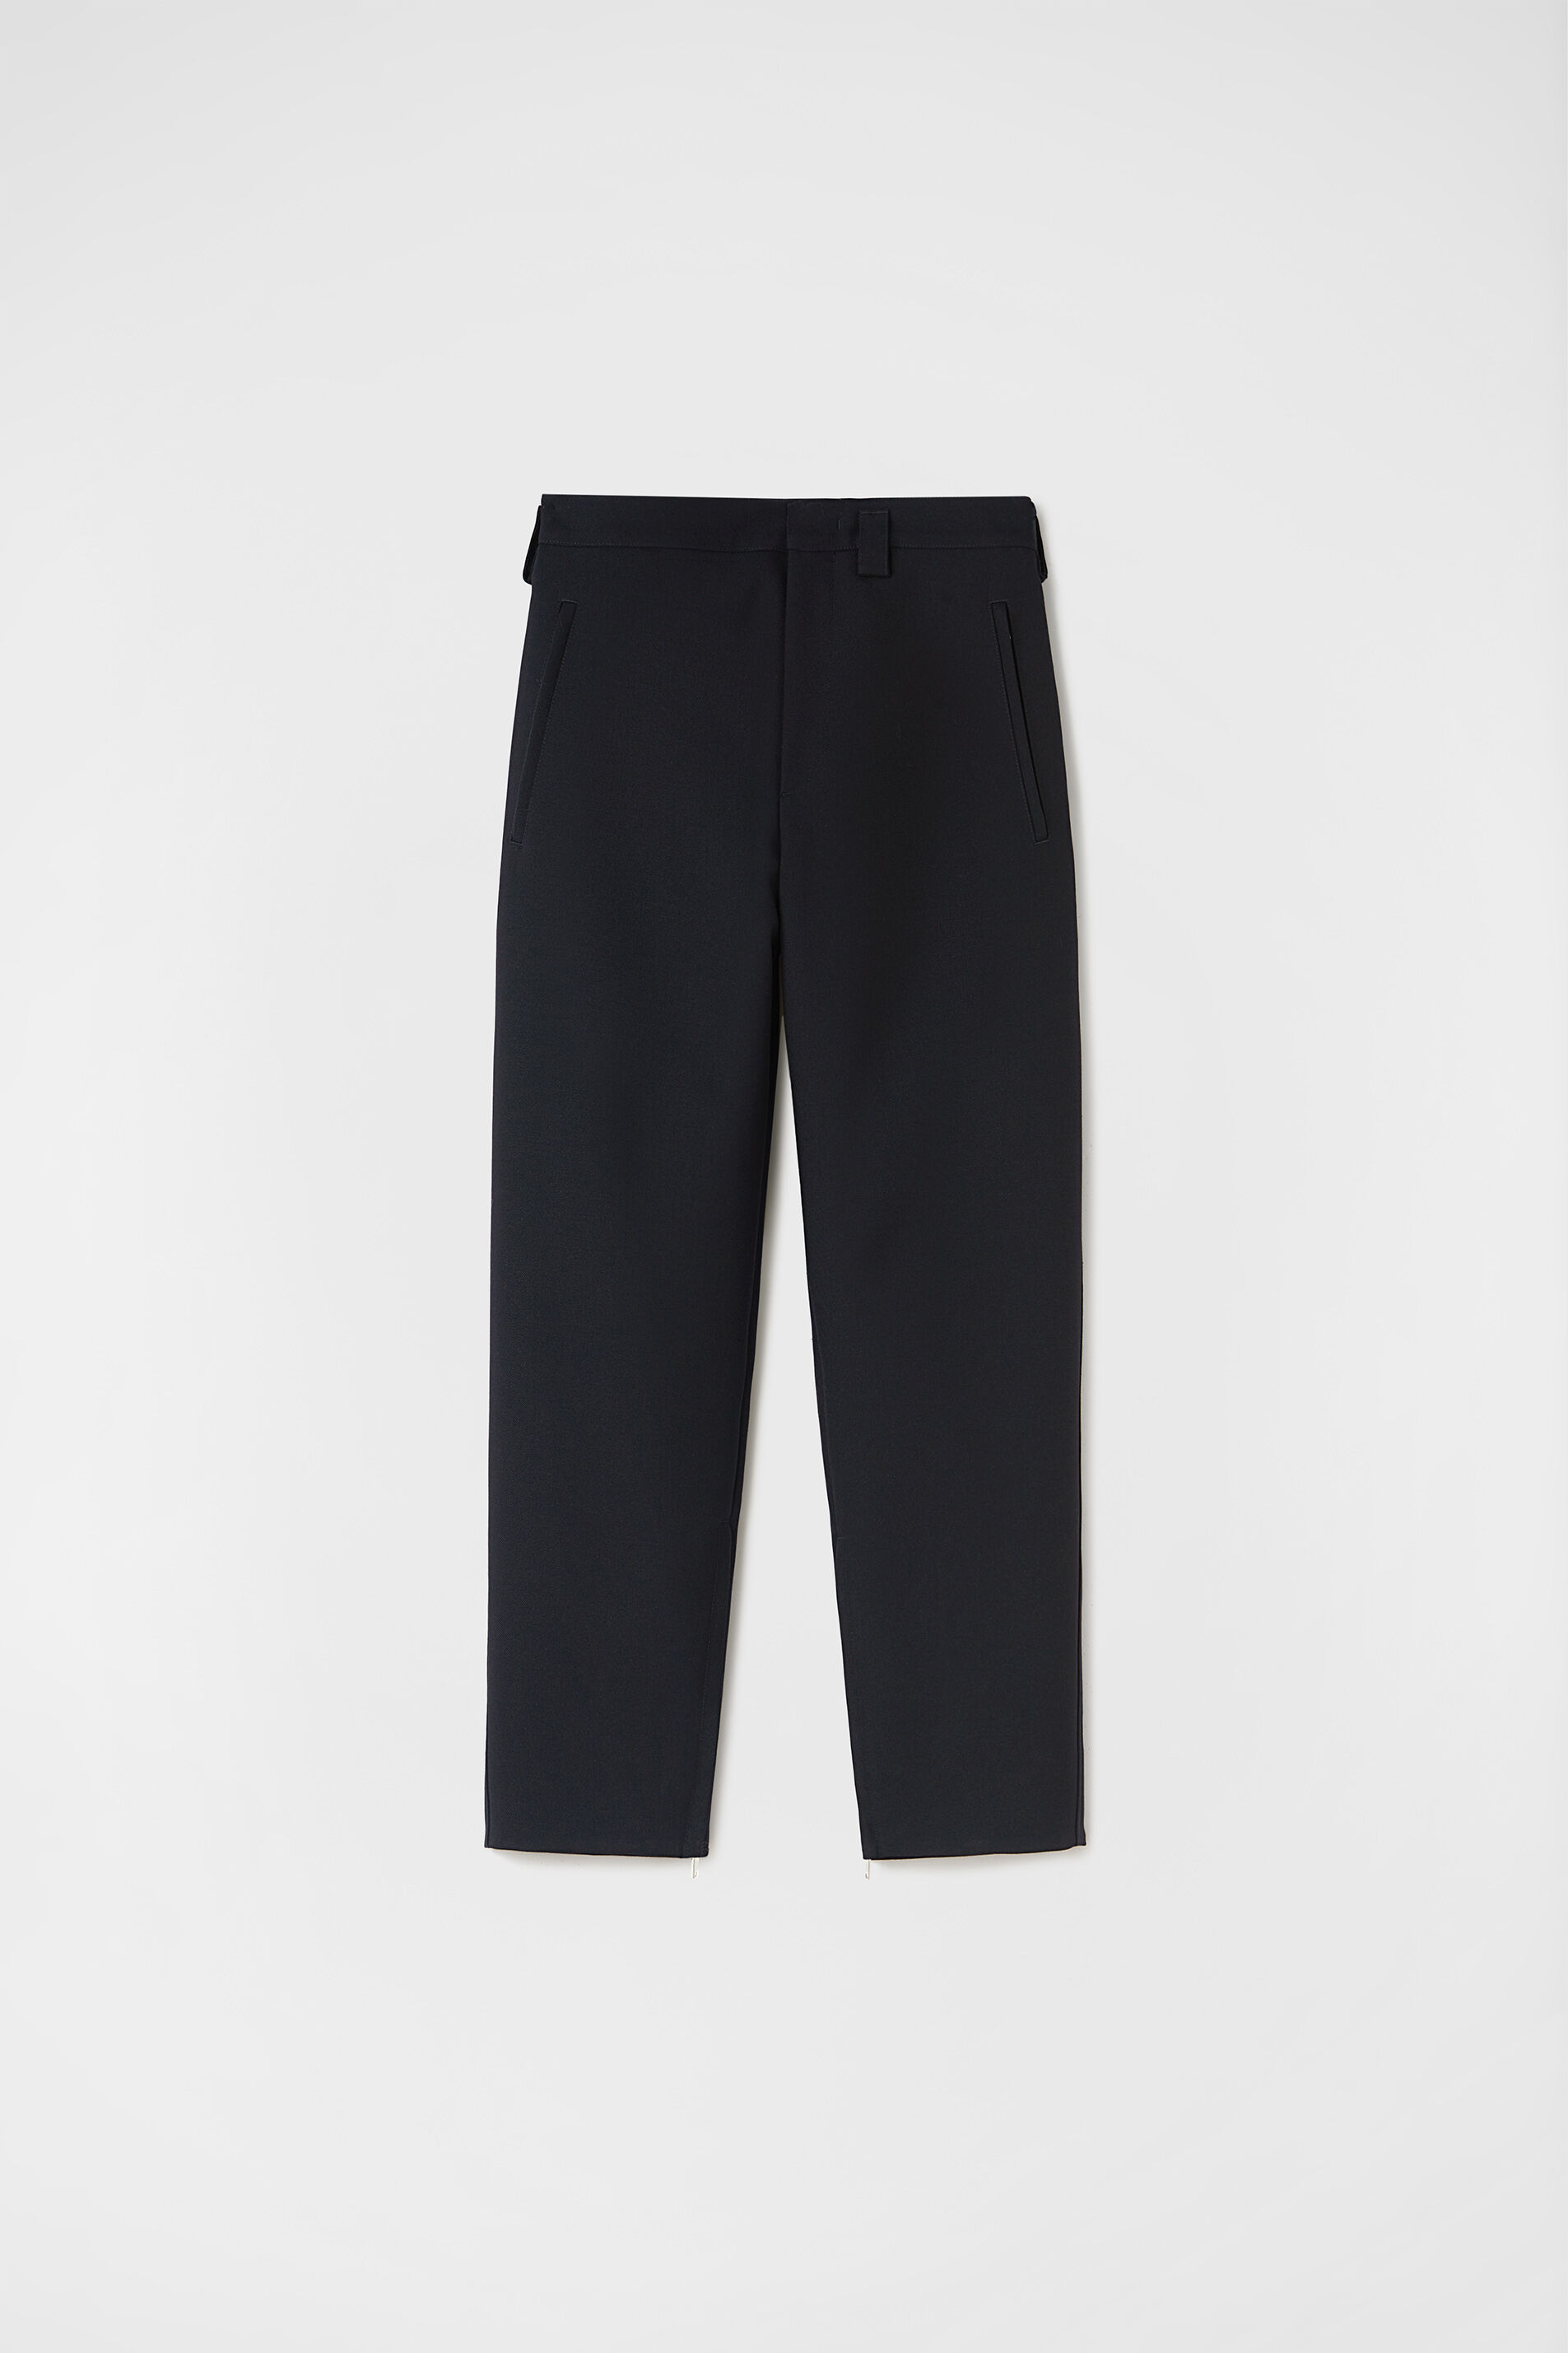 Zipped-Ankle Trousers, dark blue, large